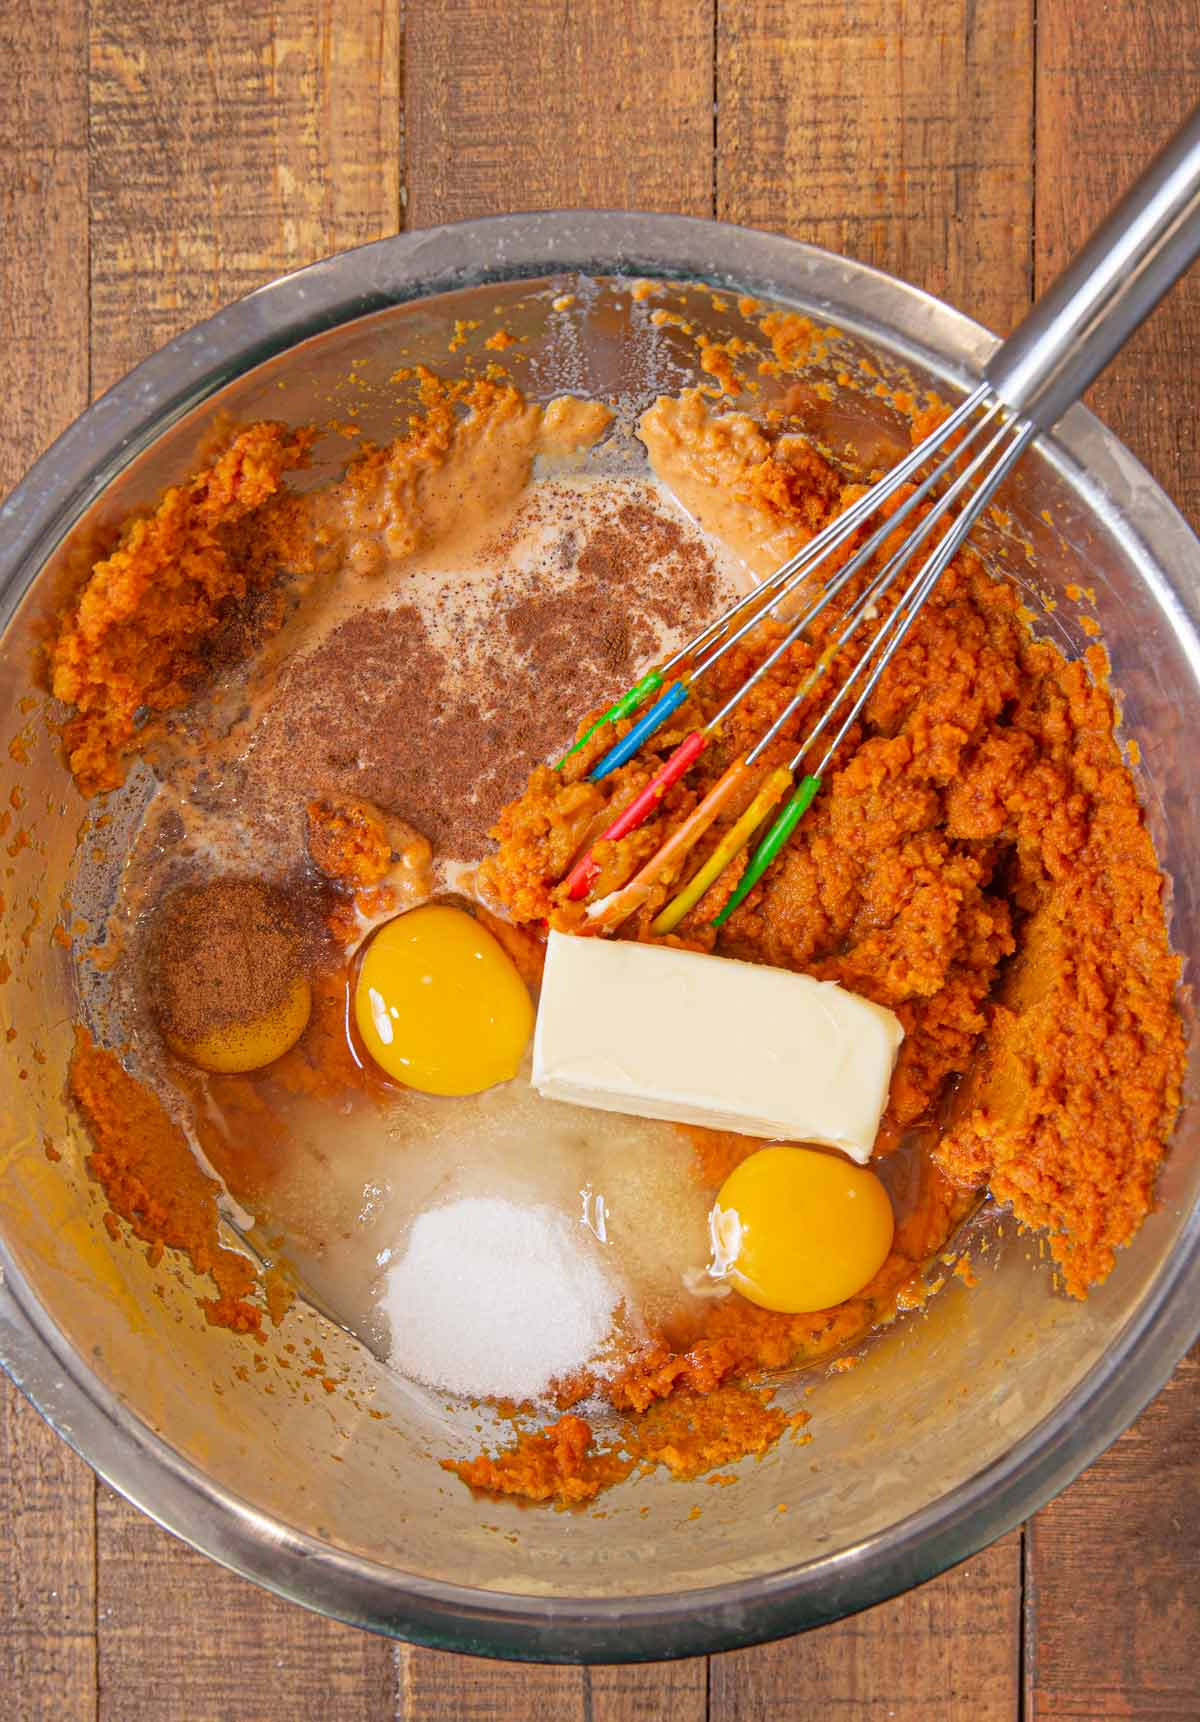 Ingredients for Sweet Potato Soufflé in metal bowl